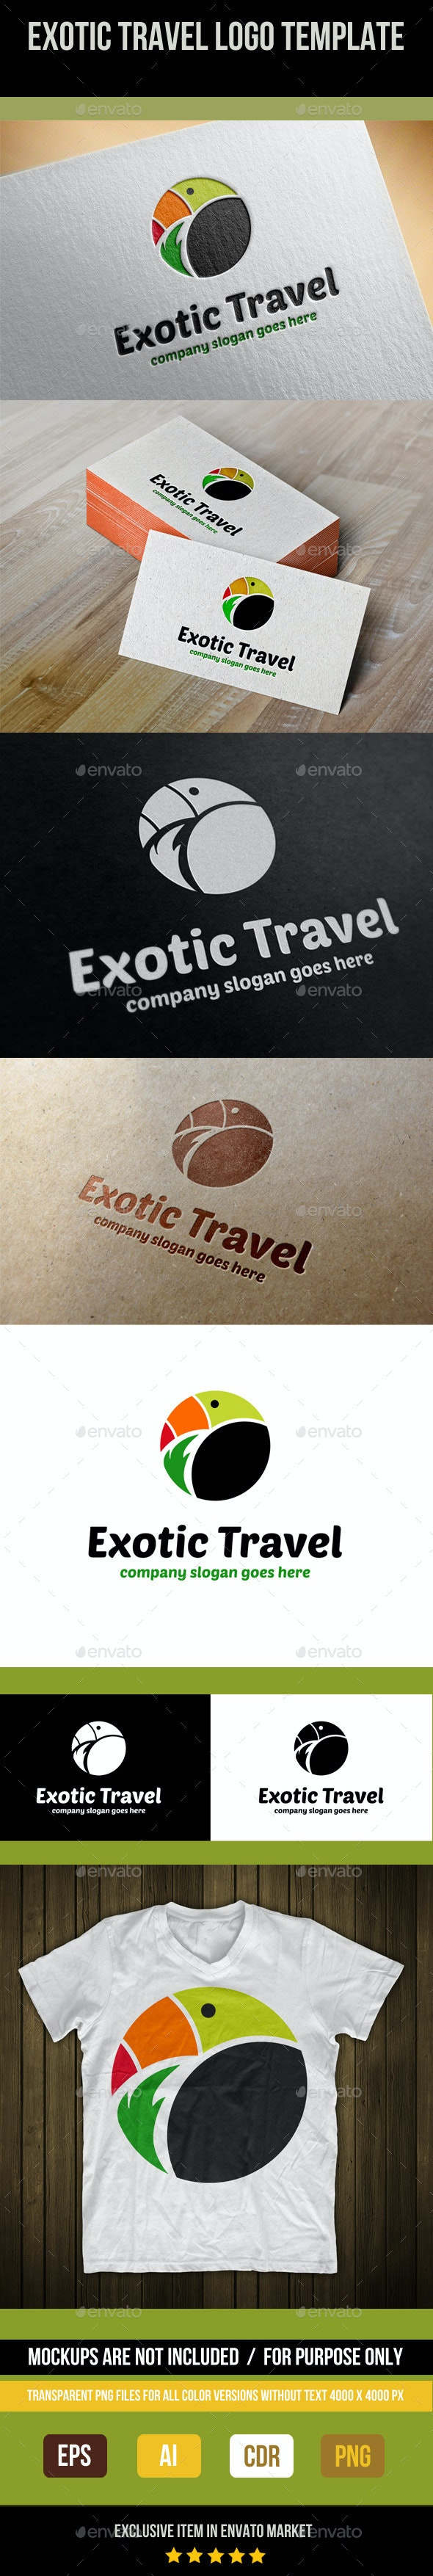 Exotic Travel Logo Template - Abstract Logo Templates